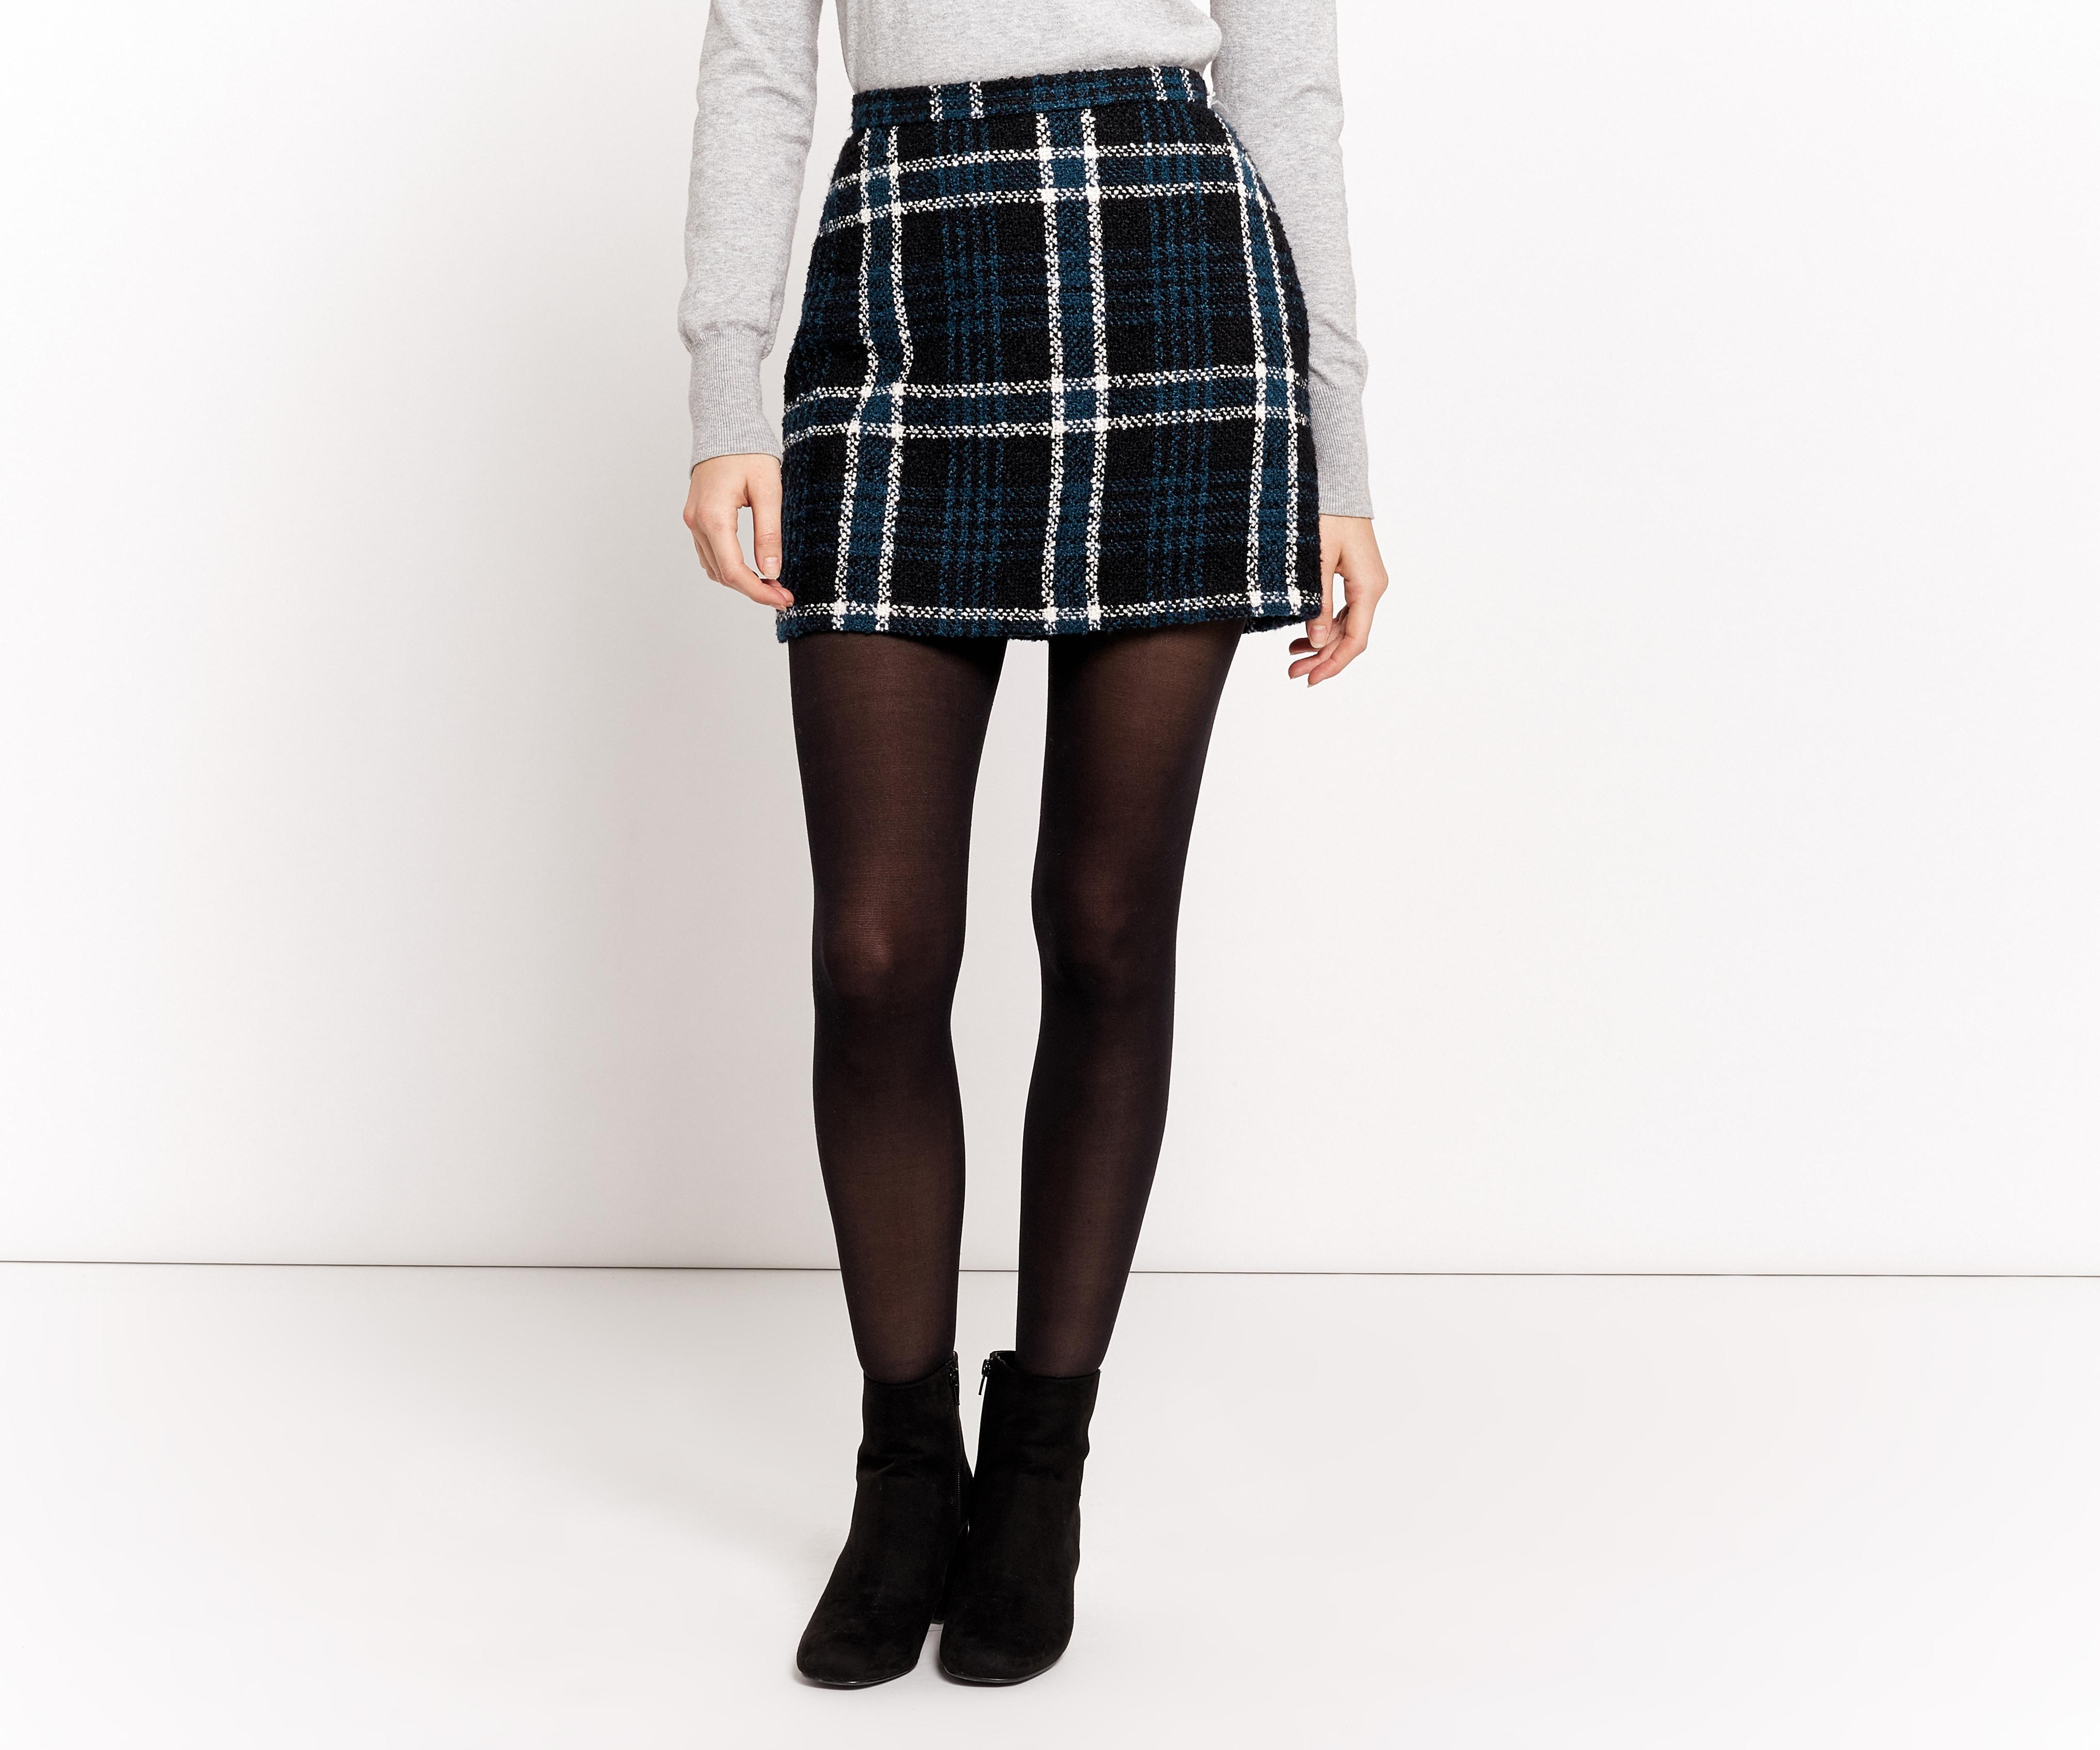 d082c338df75 Oasis Marley Boucle Check Mini Skirt in Black - Lyst